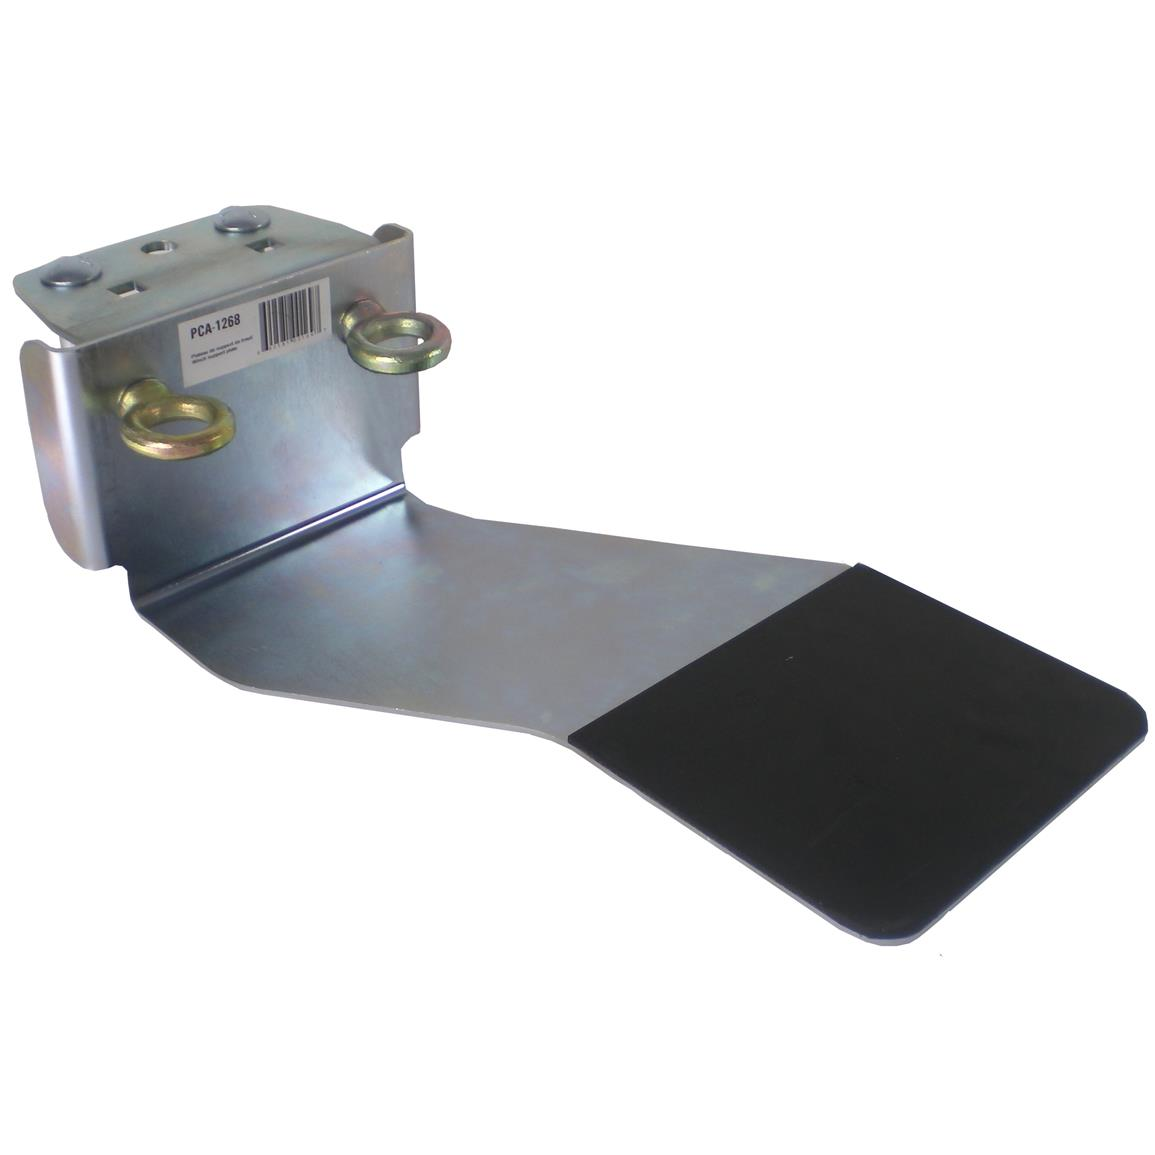 Portable Winch Co. PCA-1268  Support Plate with Bent Pin